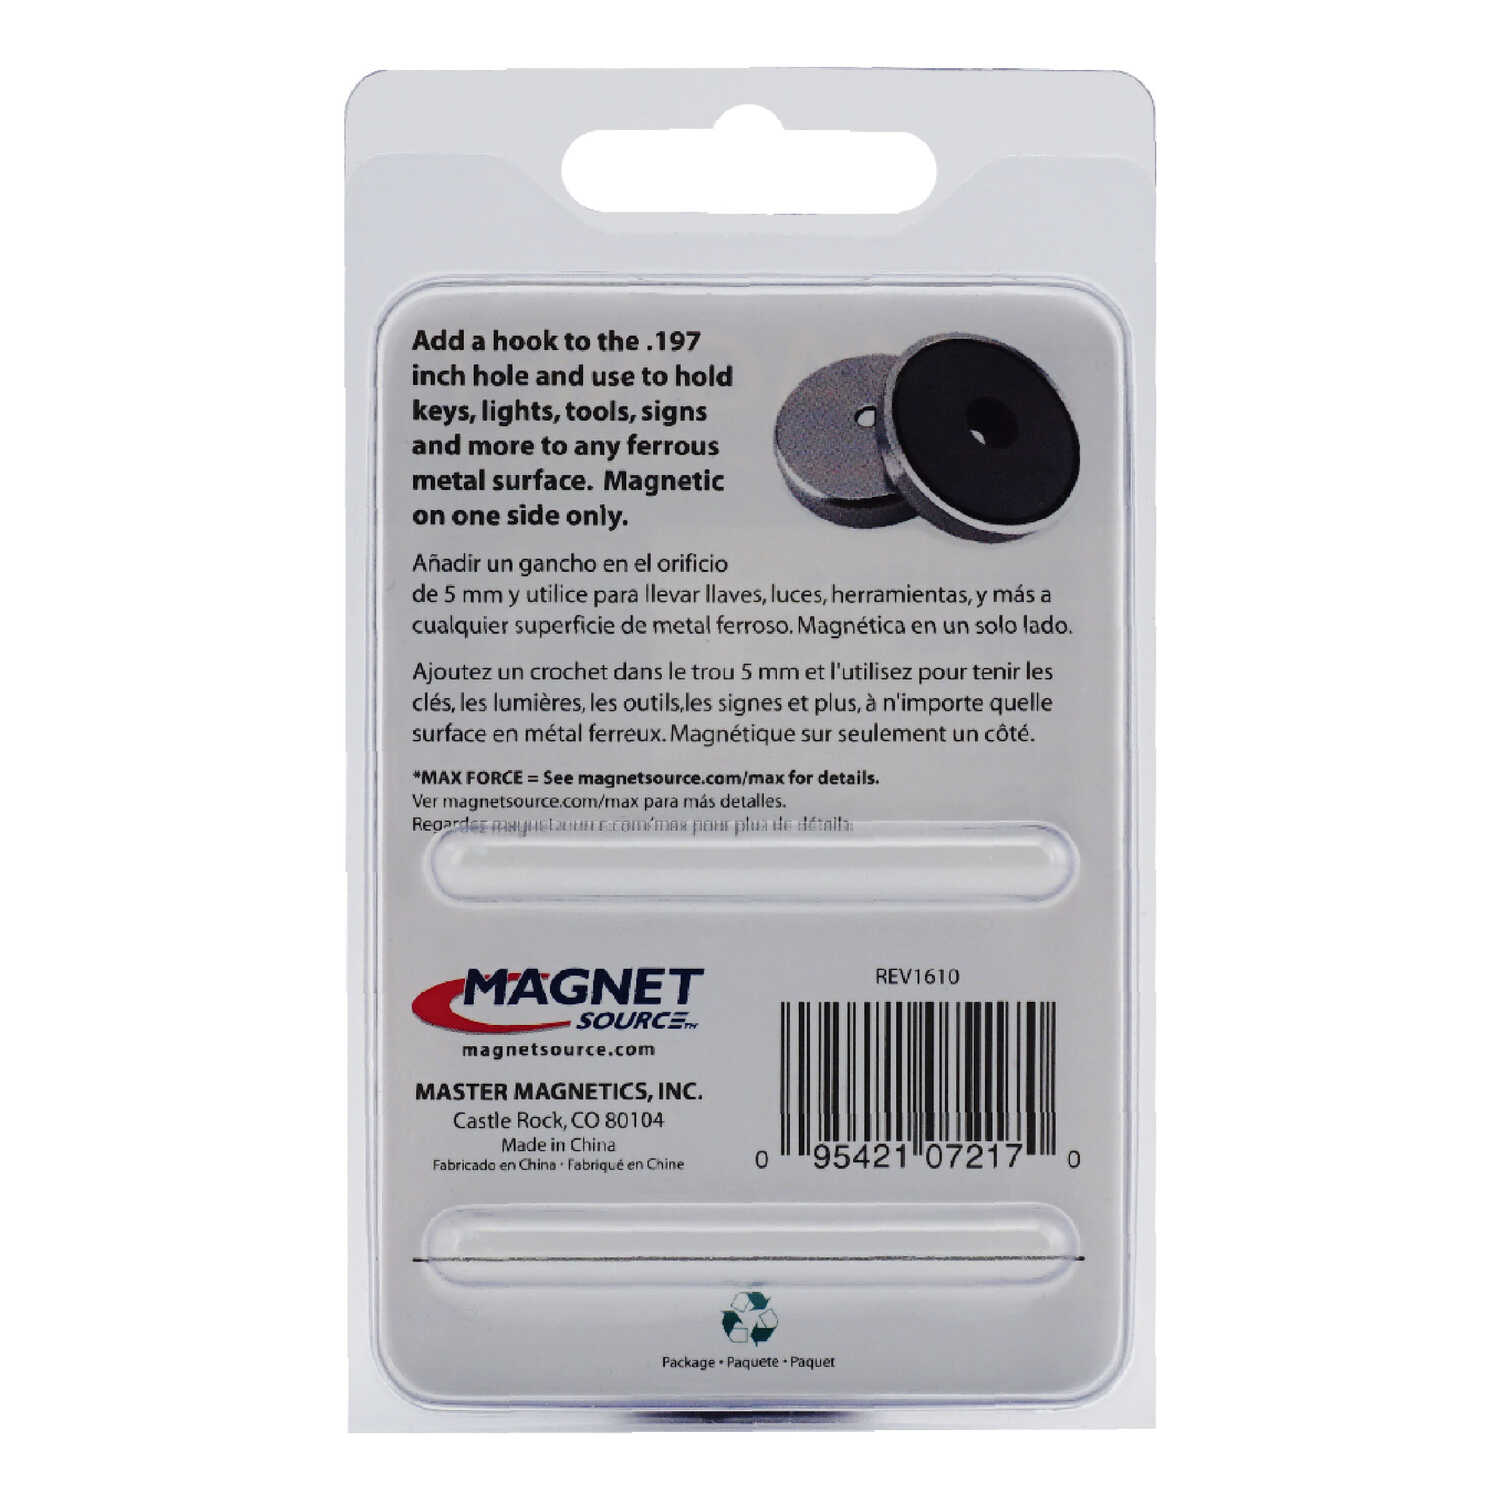 Master Magnetics  .303 in. Ceramic  Round Base Magnet  25 lb. pull 3.4 MGOe Silver  1 pc.